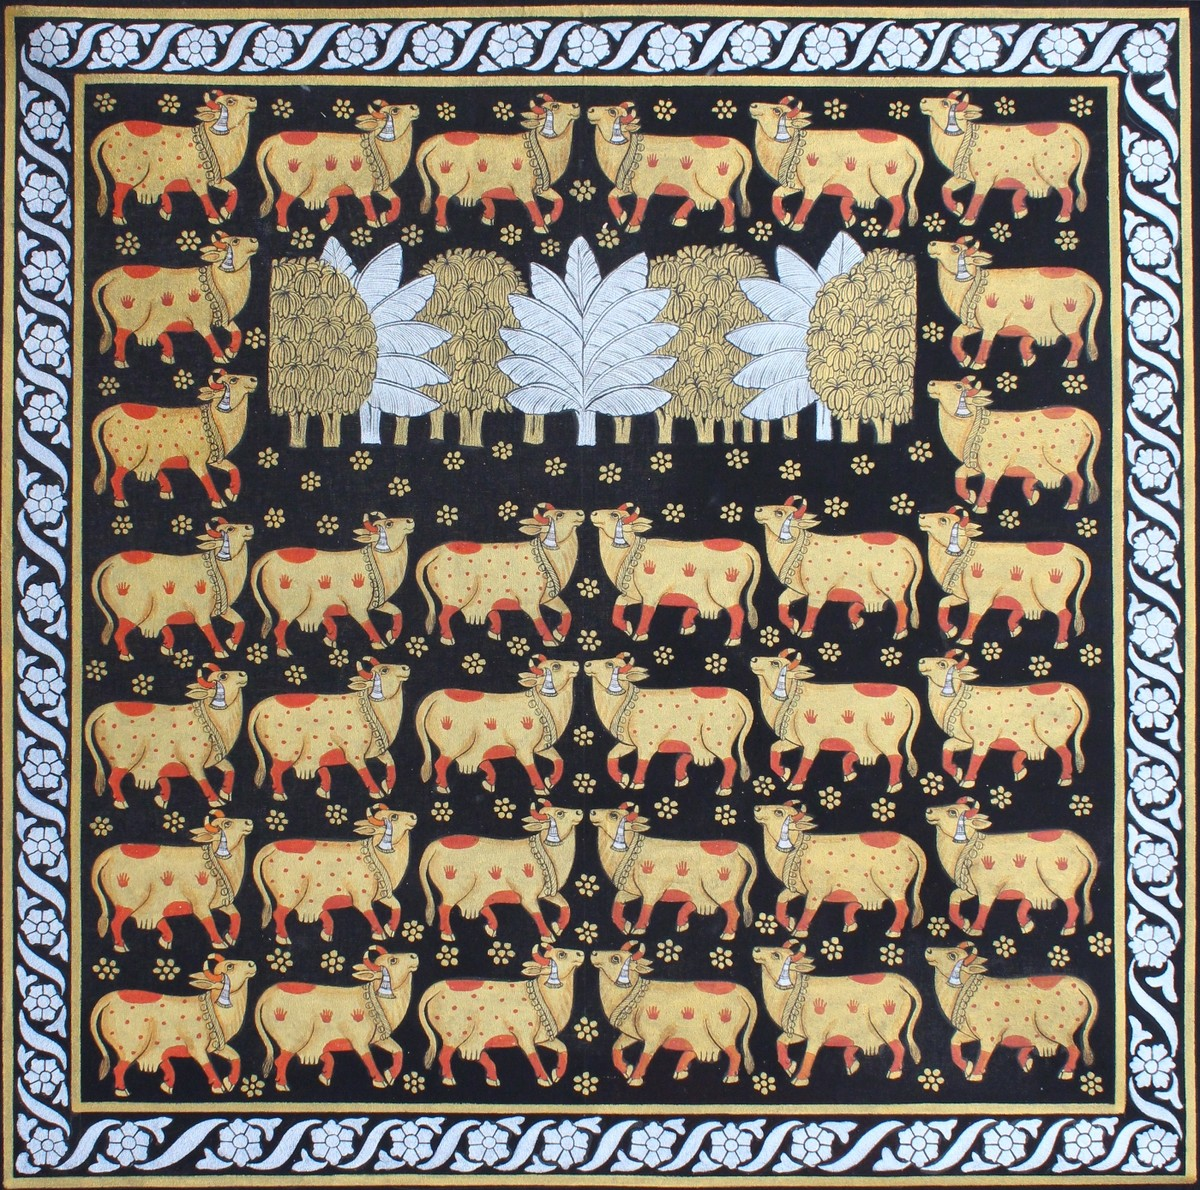 Cows by Unknown Artist, Folk Painting, Stone Colour on Cloth, Brown color